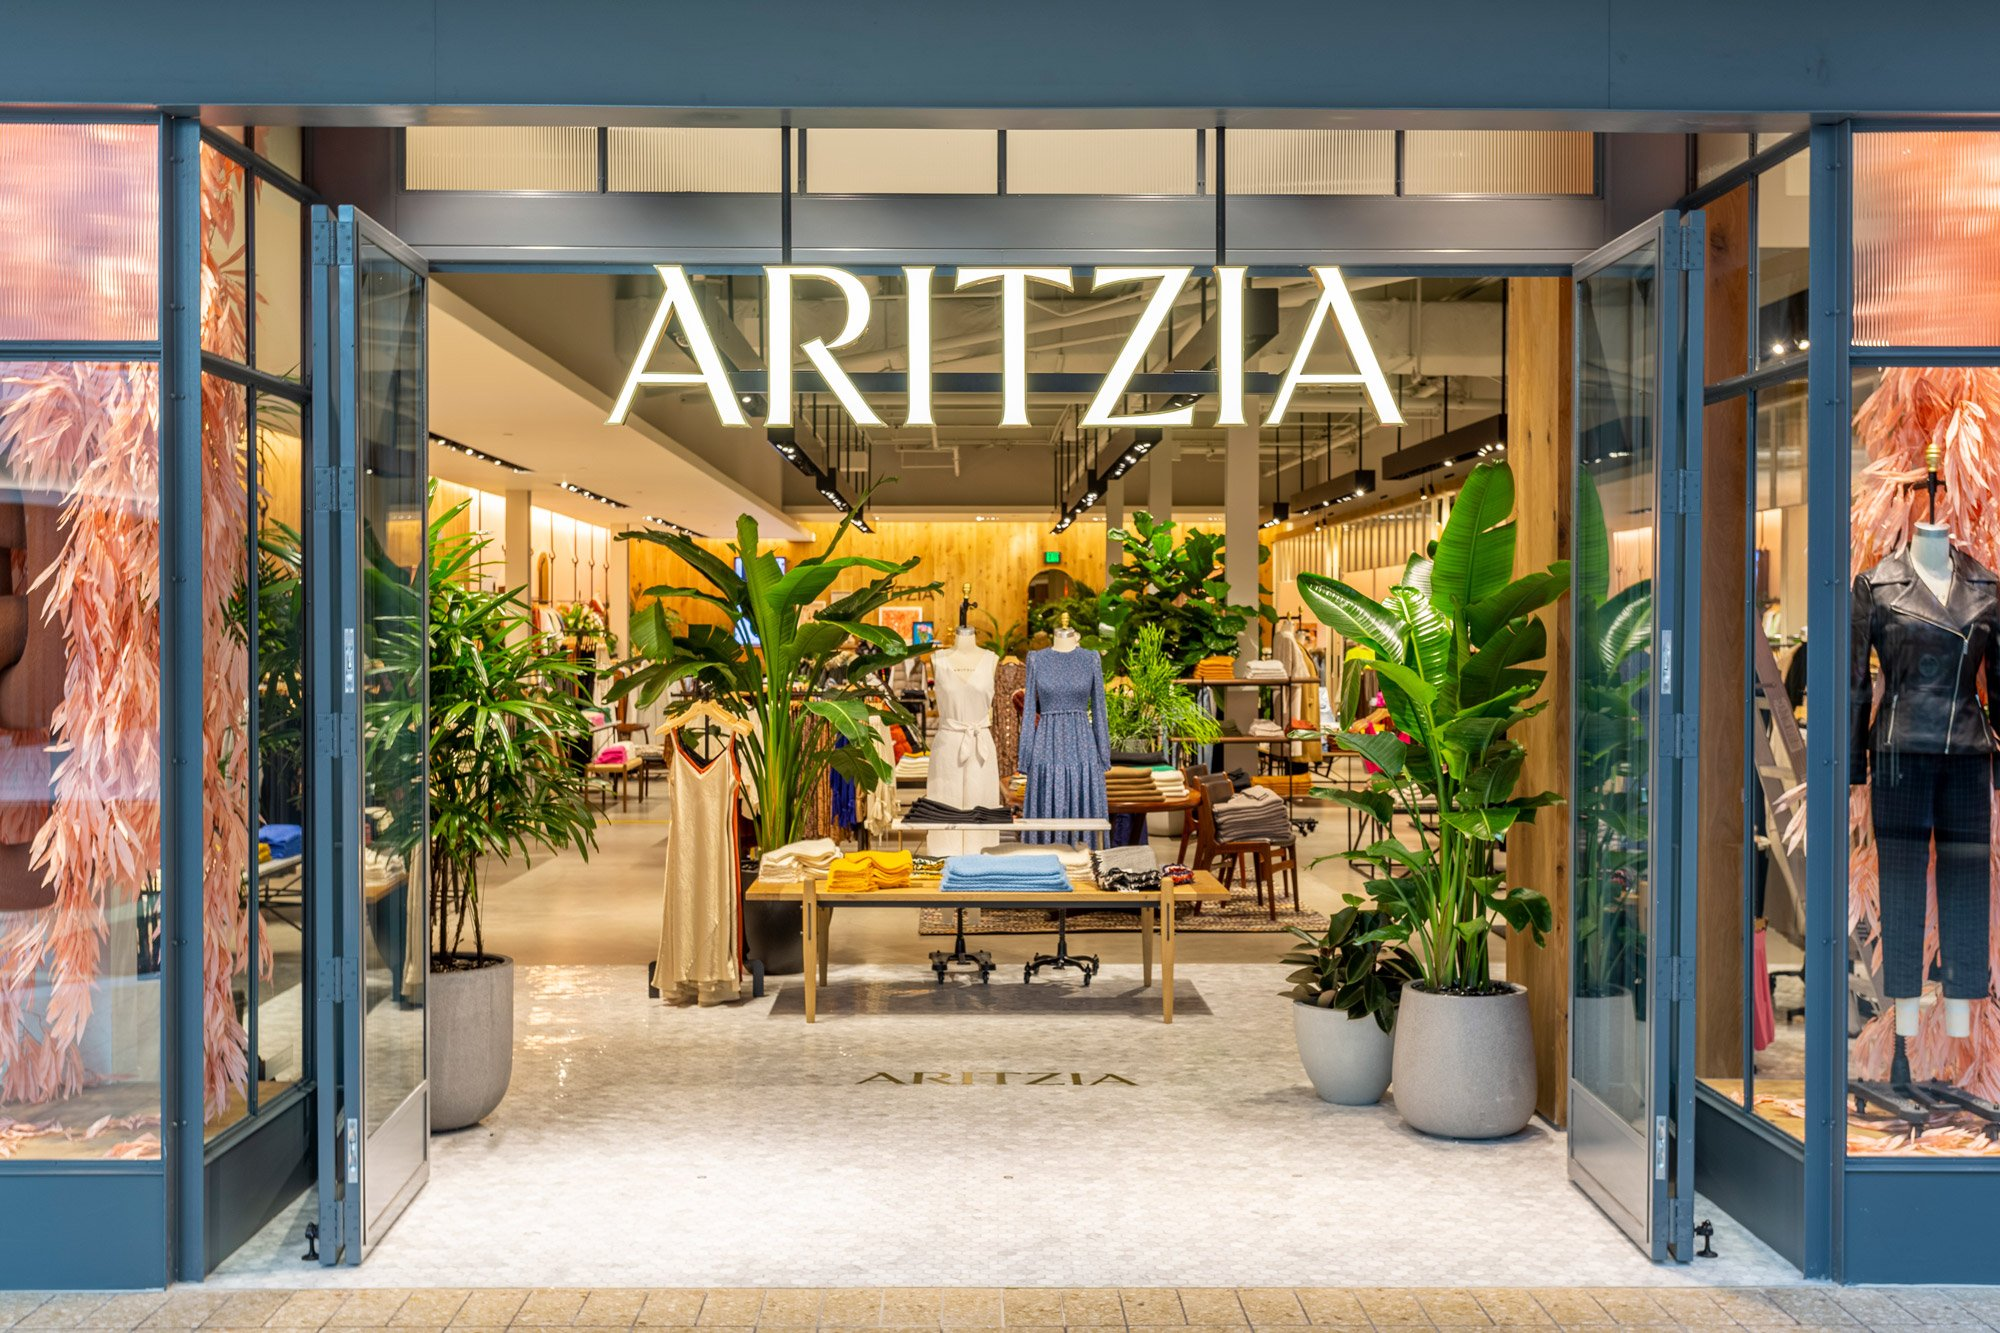 NOW OPEN: ARITZIA CHERRY CREEK